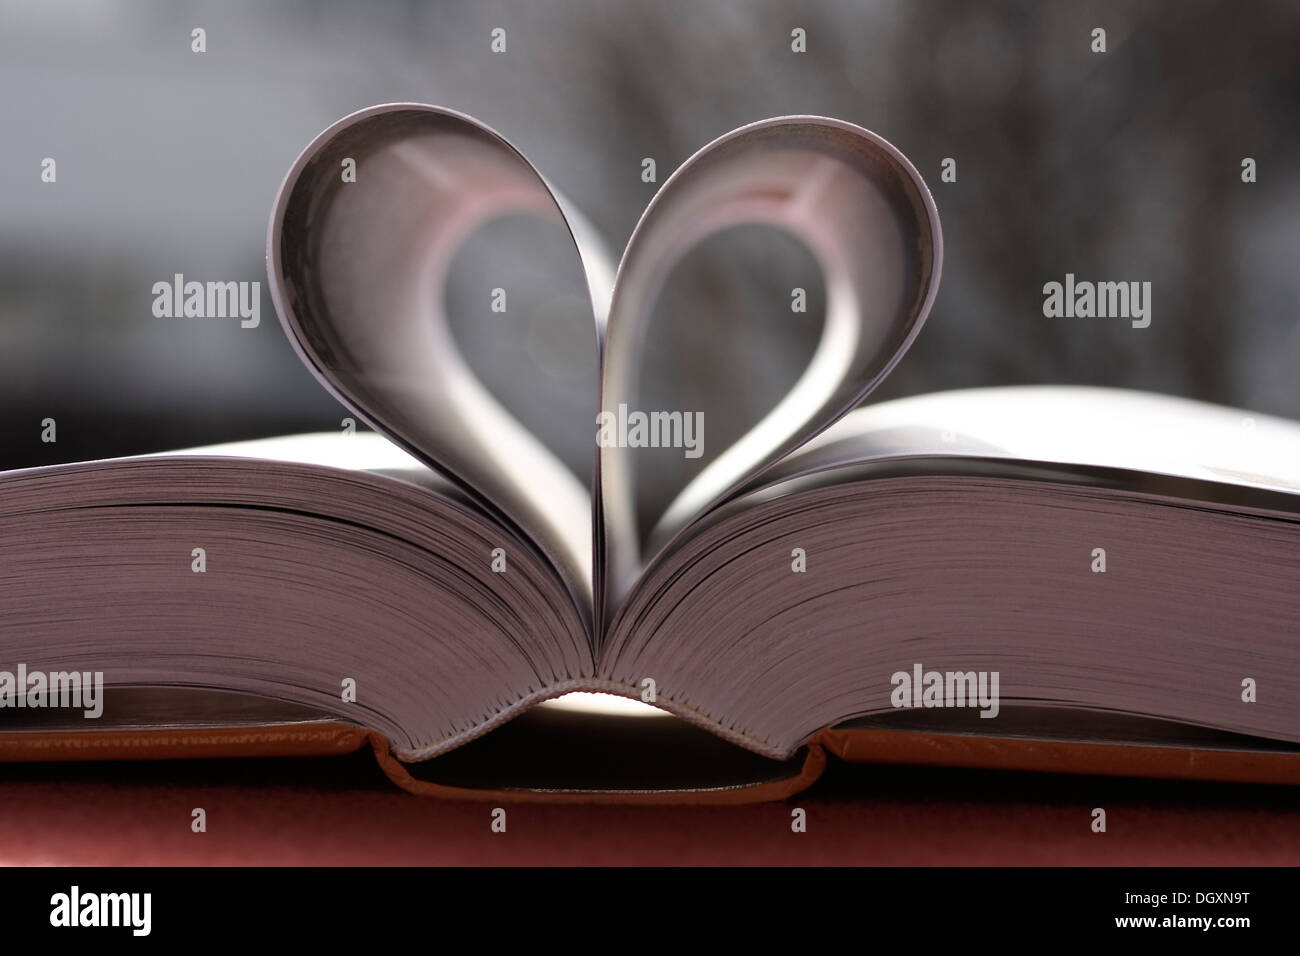 Book pages, heart-shape, love story - Stock Image